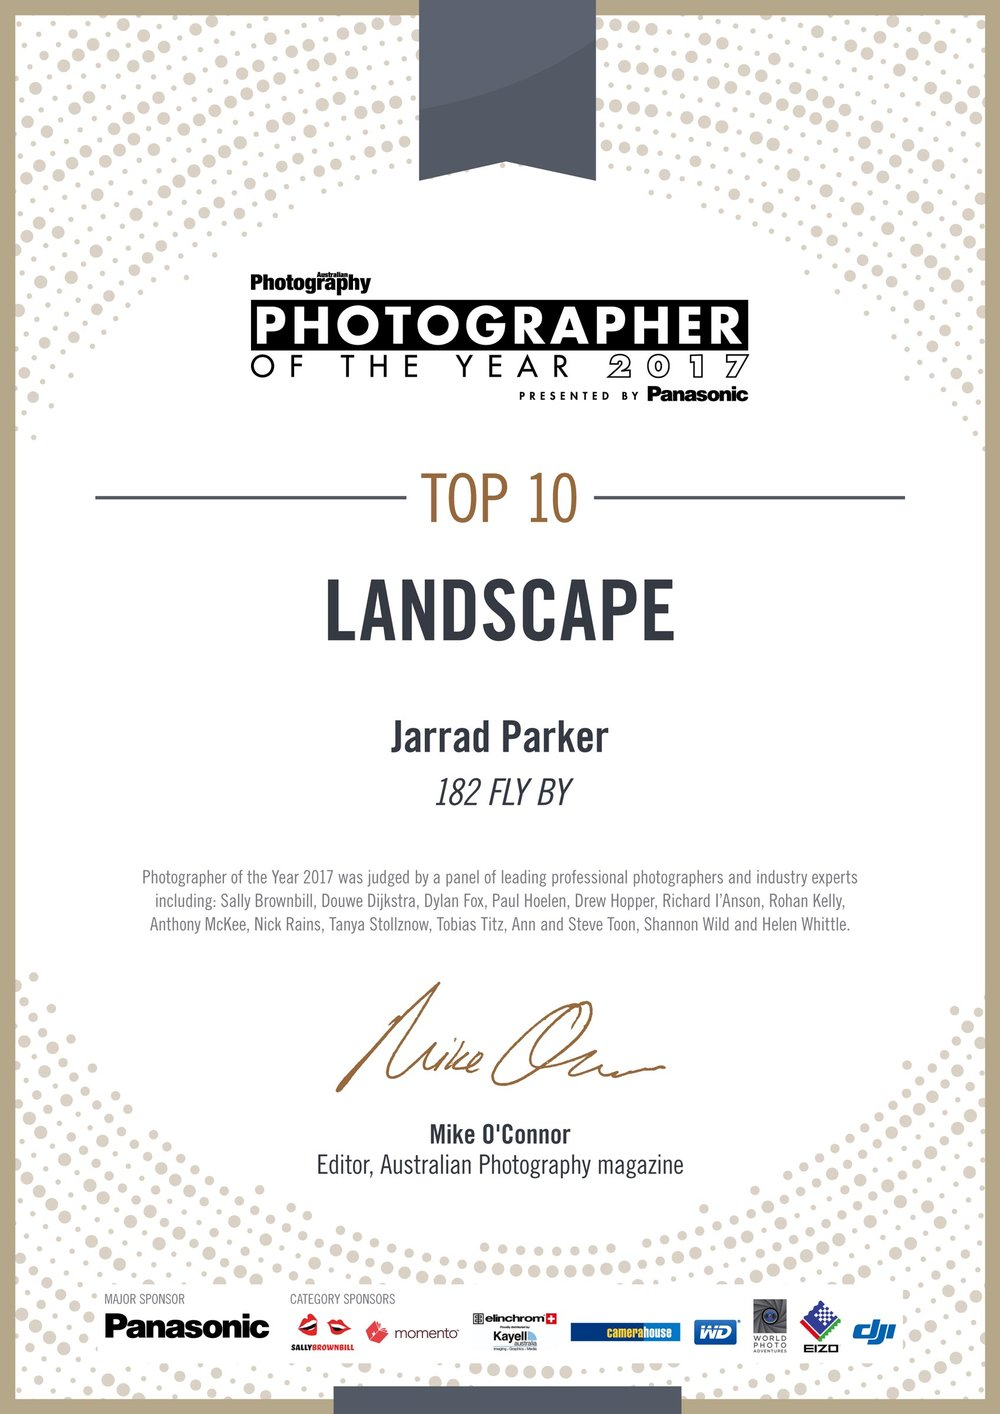 Australian Photography Magazine -   Photographer of the Year 2017.     2017 LANDSCAPE TOP 20.    -4th Place-  -6th Place-  -14th Place-